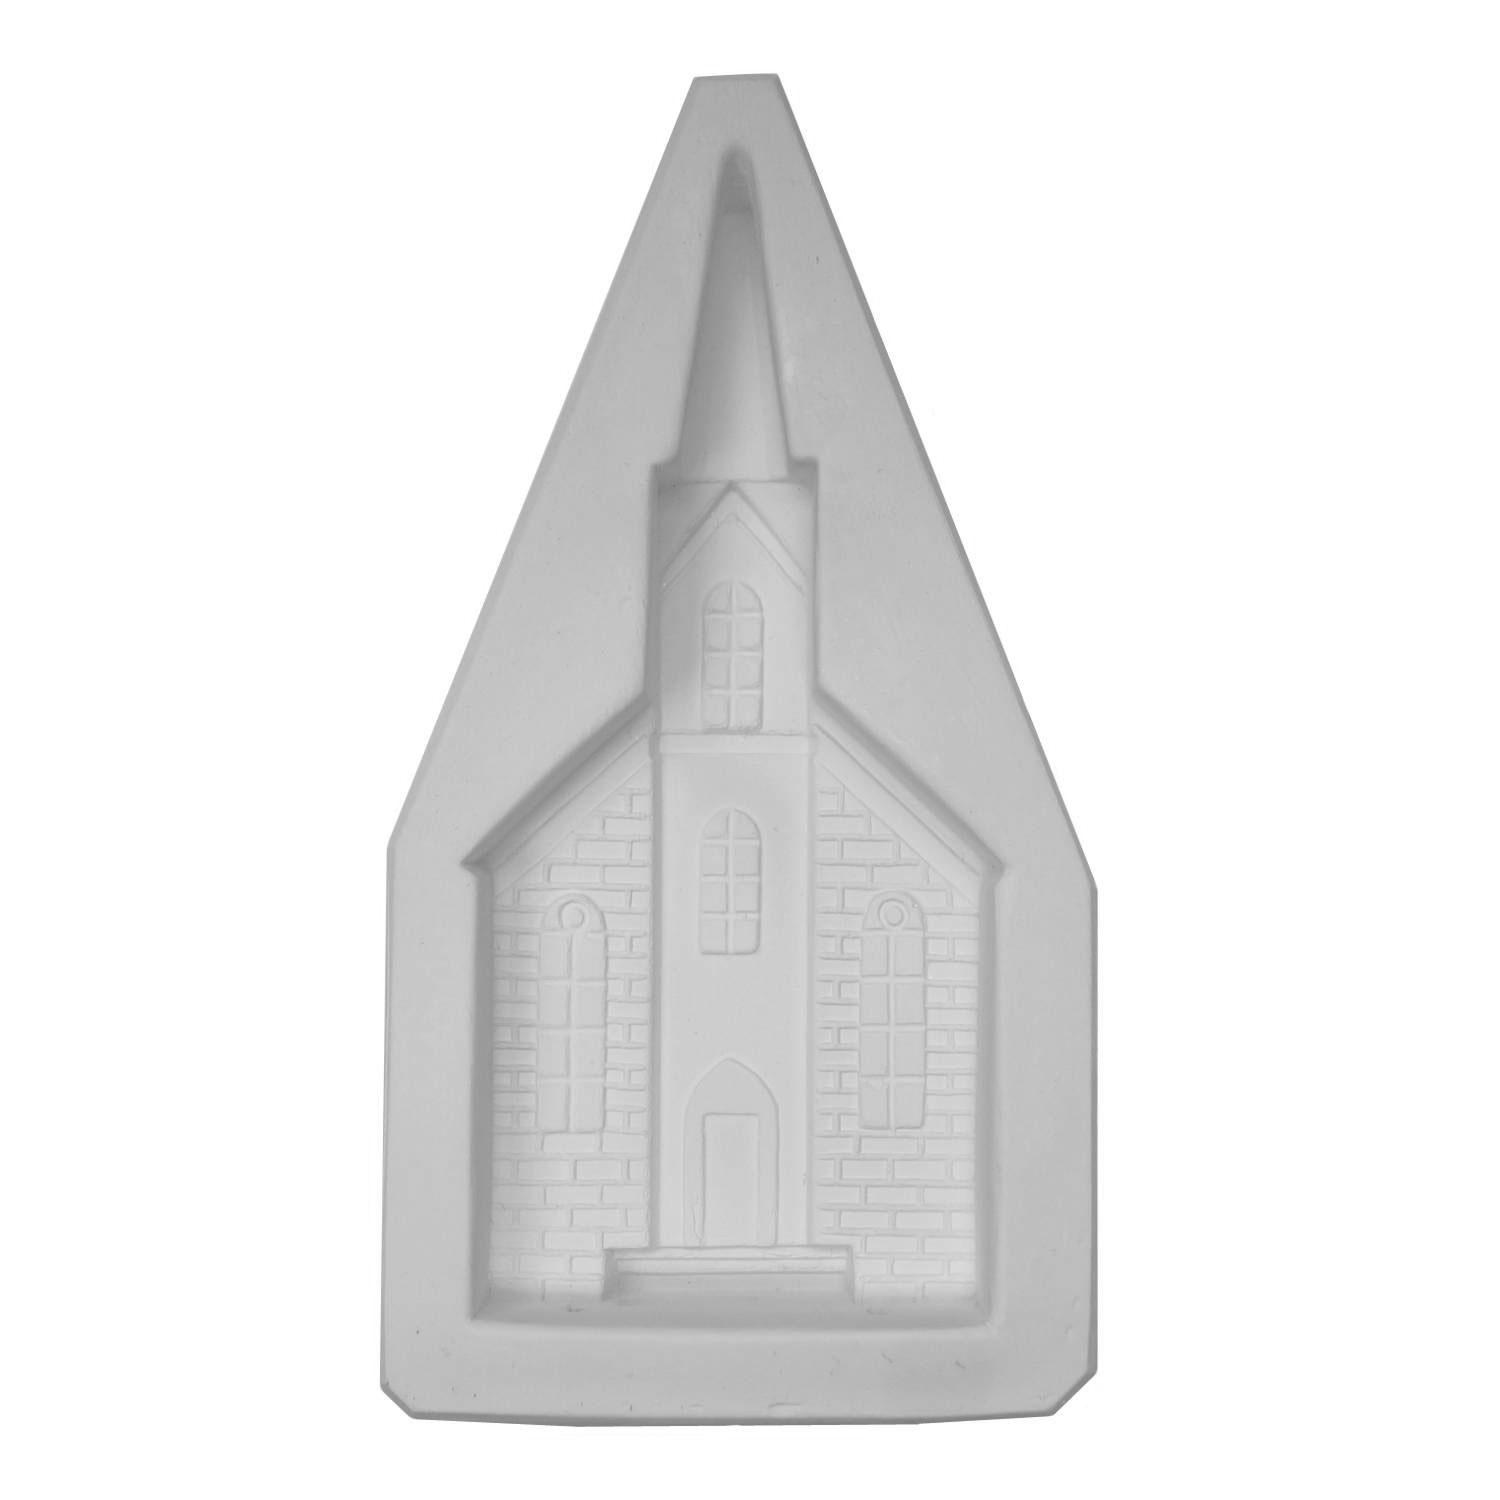 Delphi Studio Church Mold